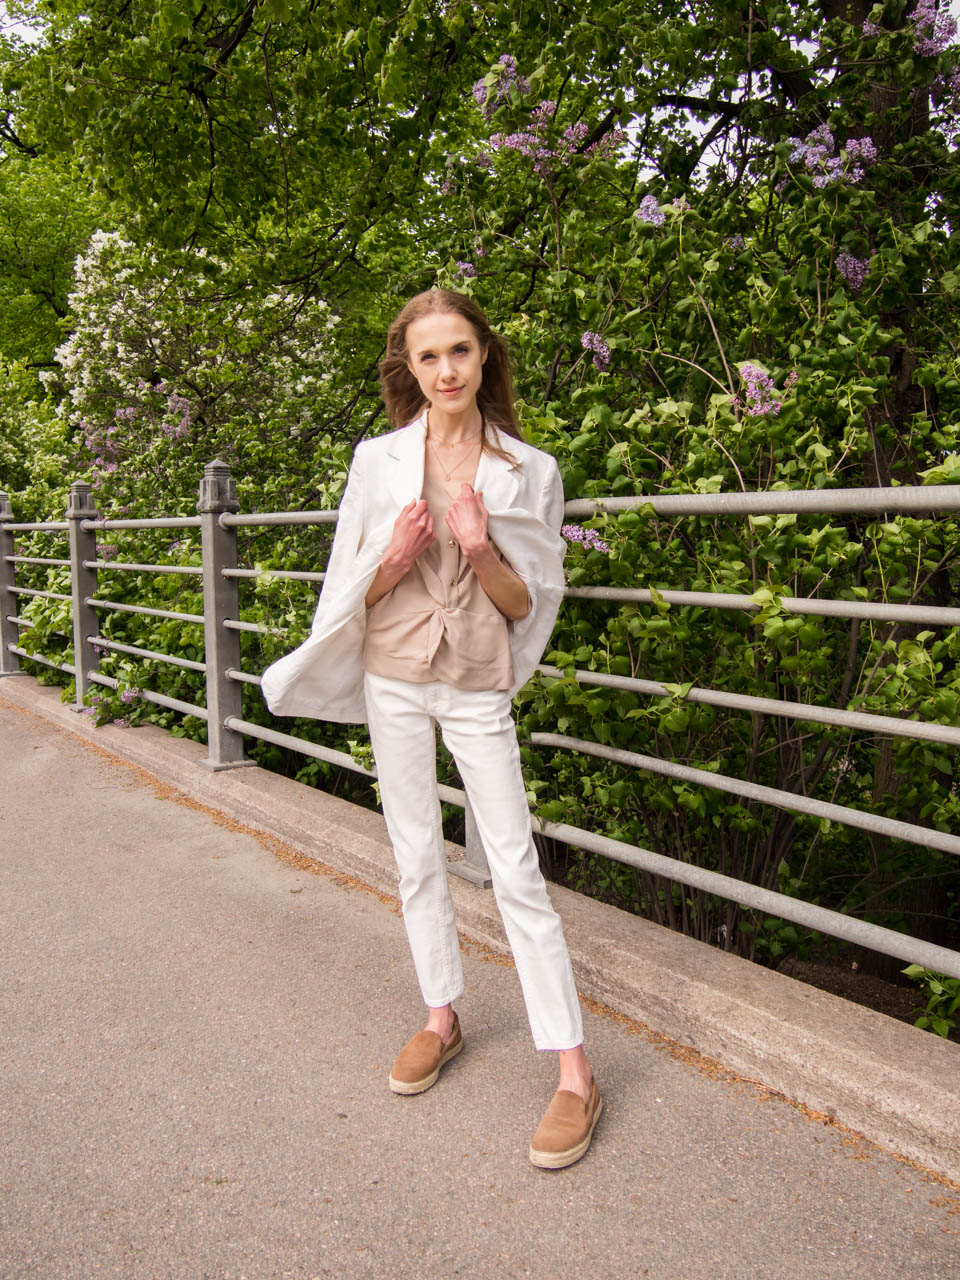 fashion-blogger-summer-outfit-inspiration-white-suit